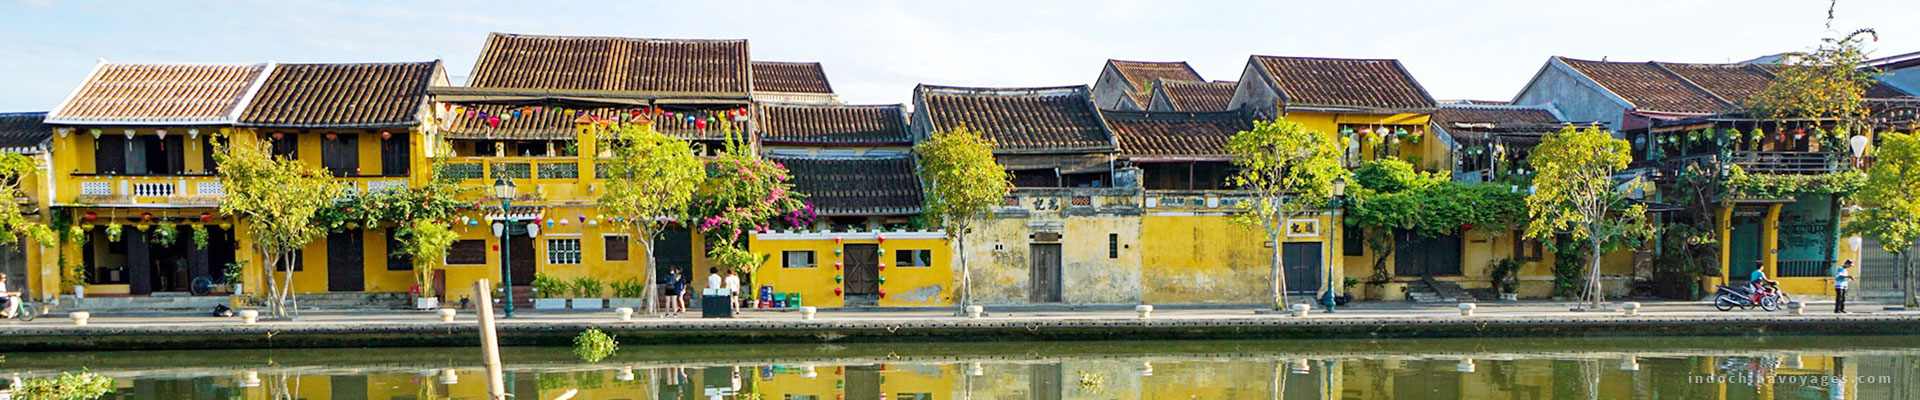 24 hours in Hoi An Vietnam – What to do & see?